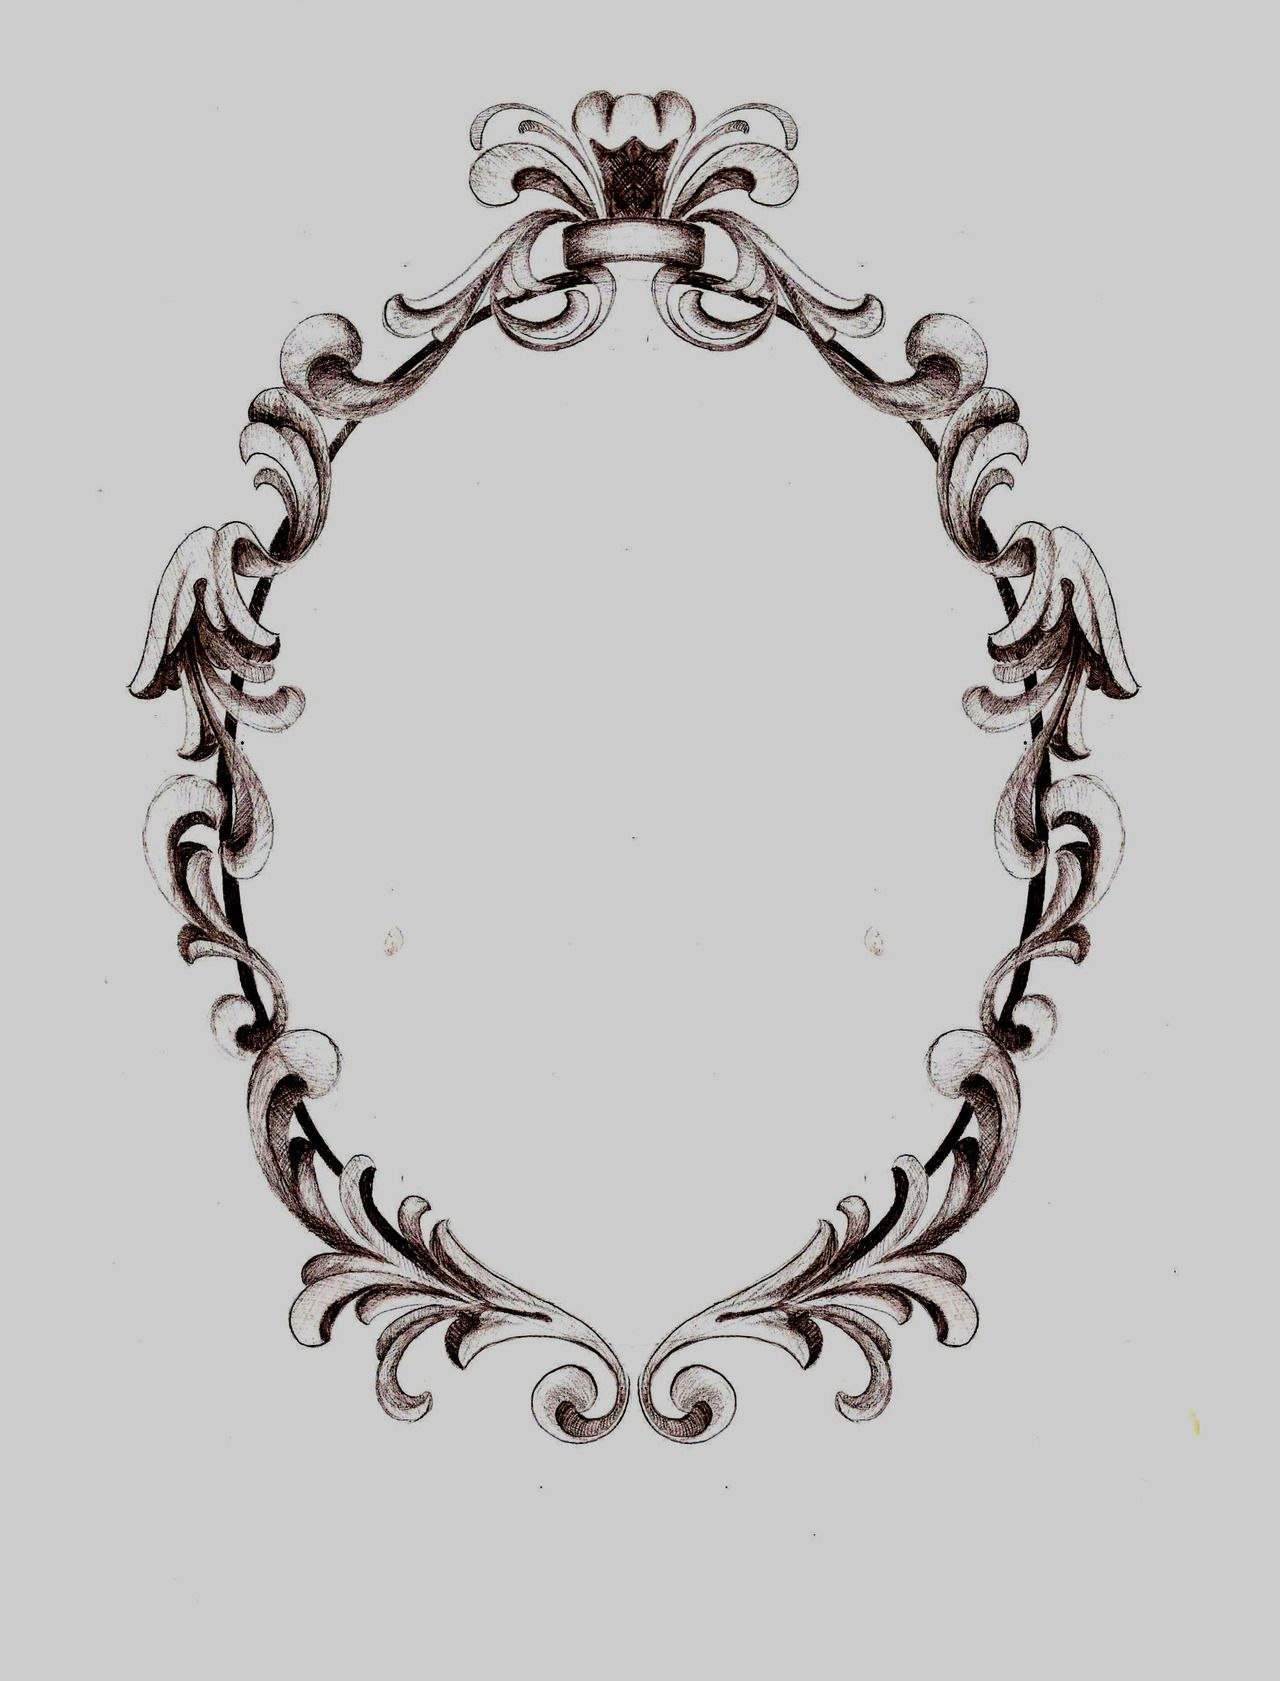 Filigree Frame Hanson Art Facebook | Diseños d | Pinterest ...